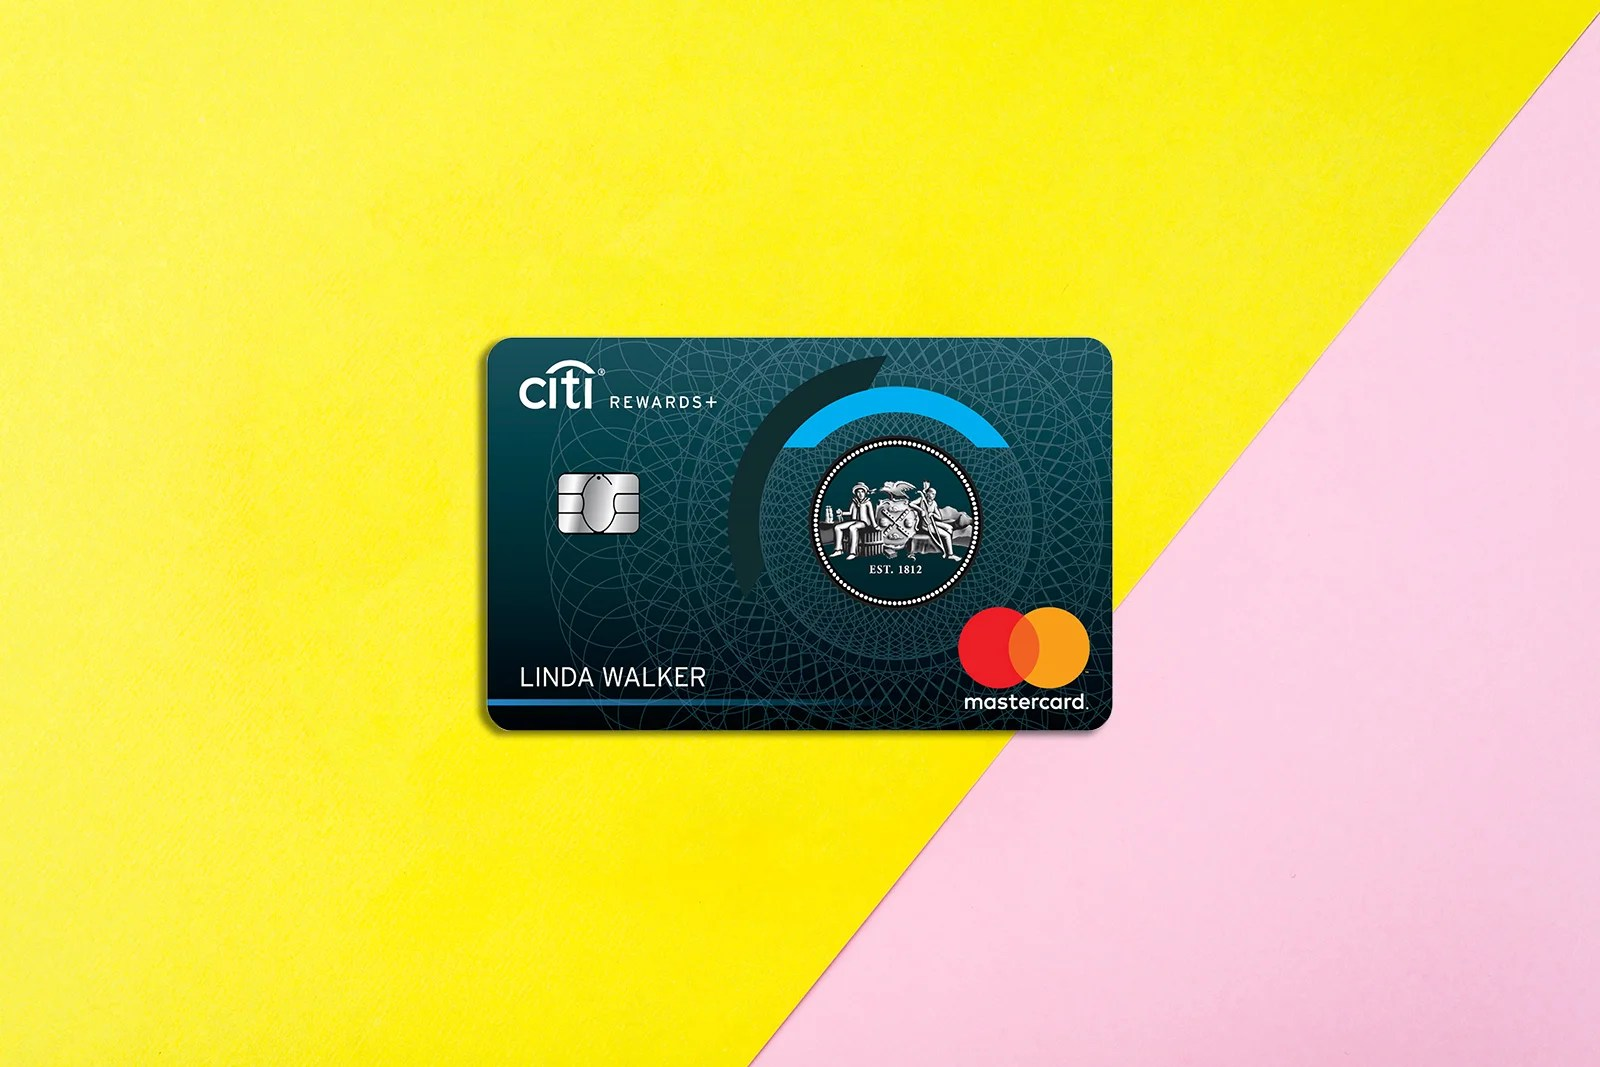 The Best Mastercard Credit Cards of 2019 - The Points Guy